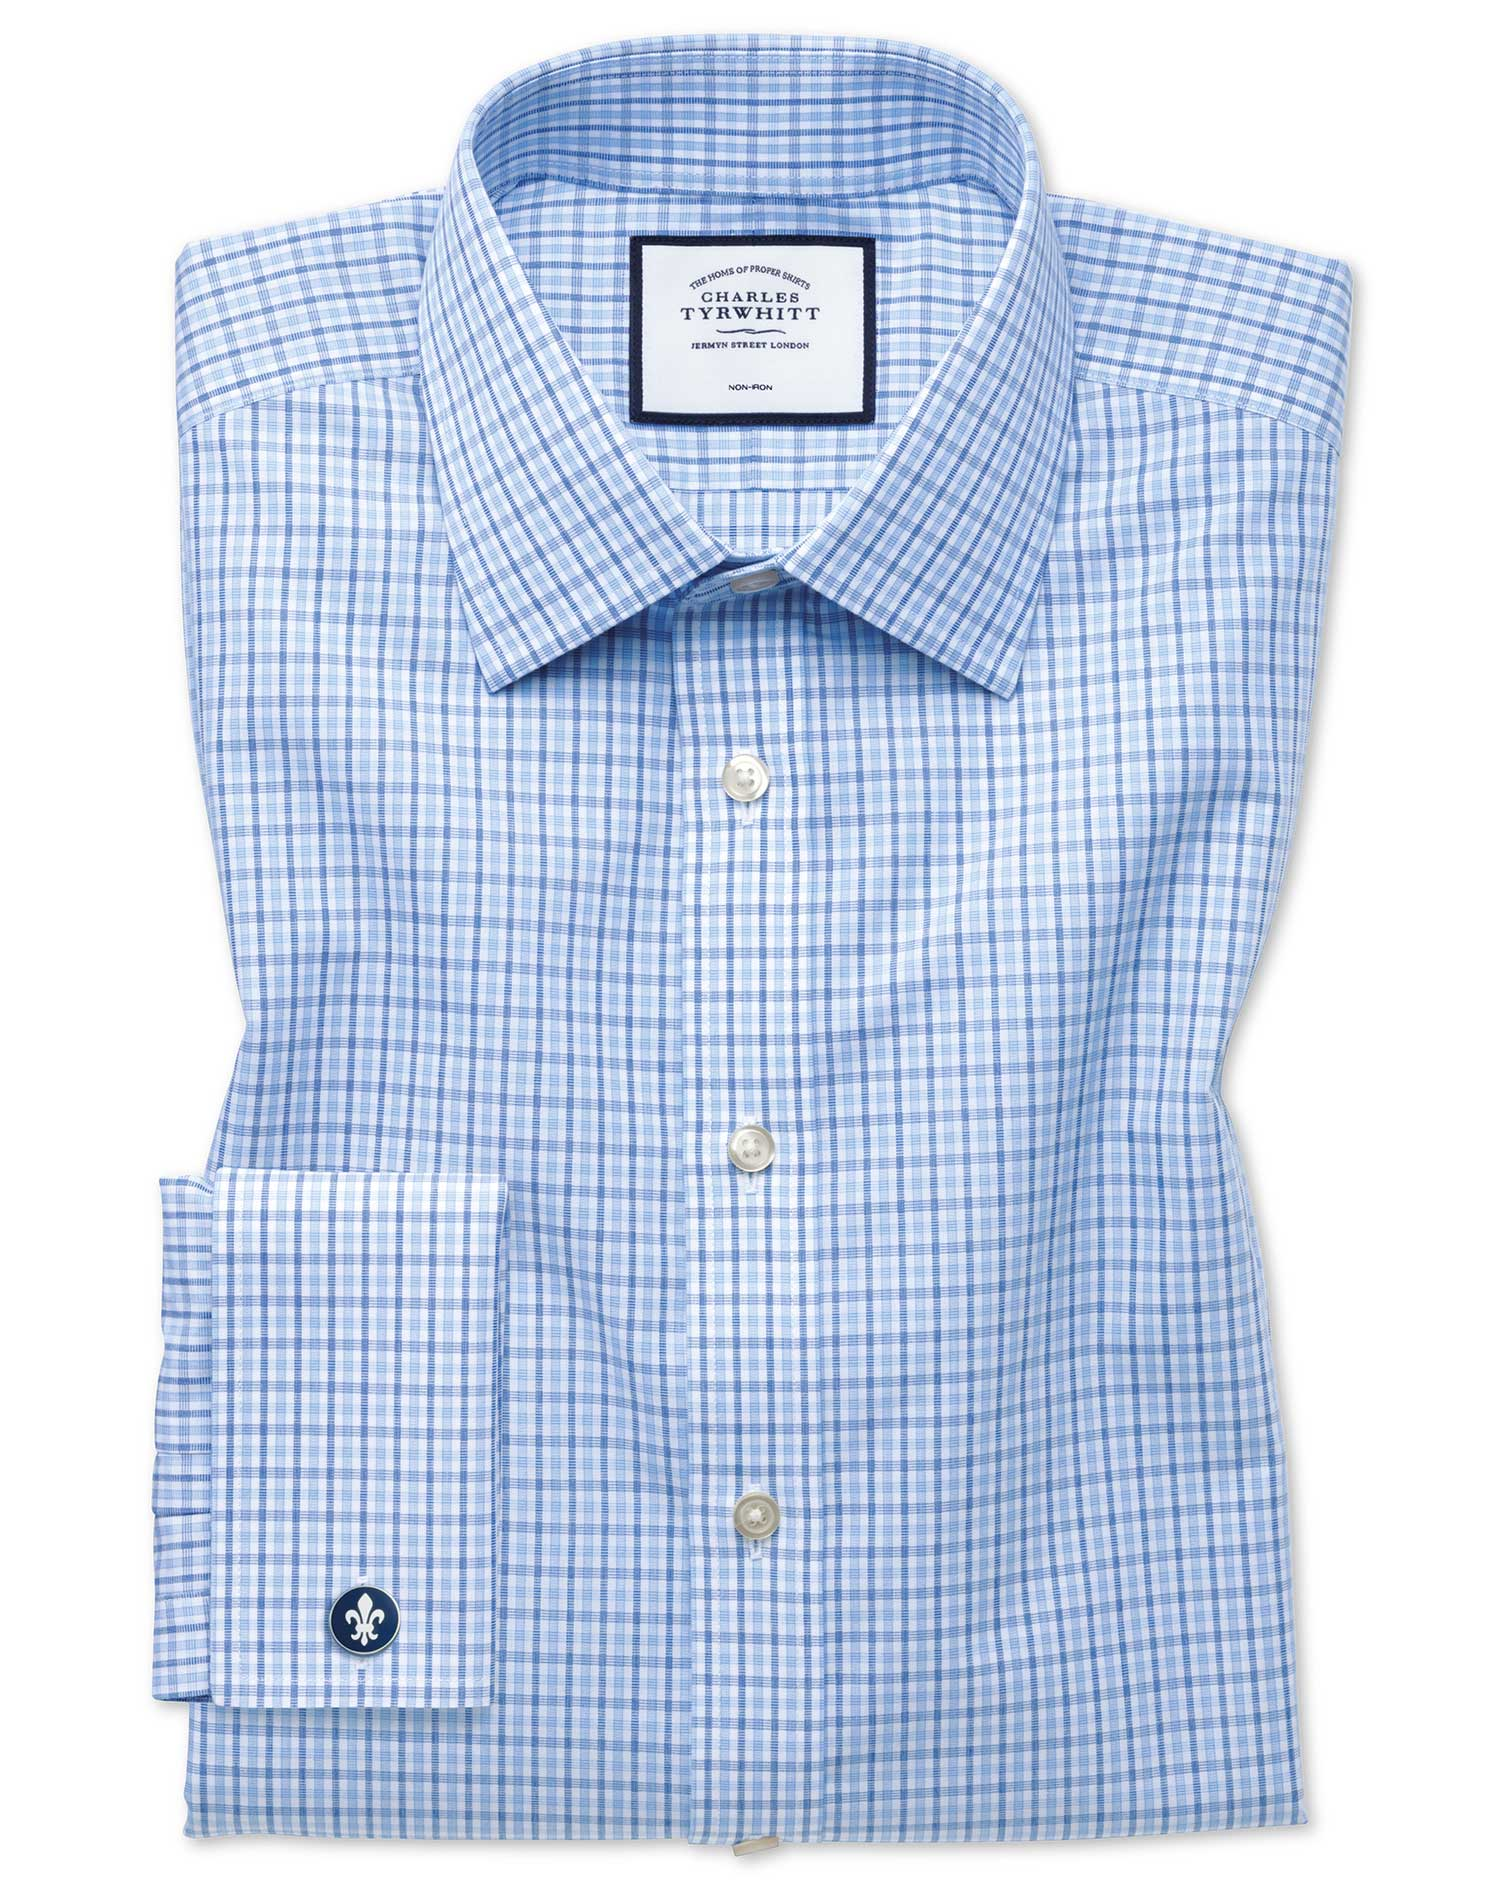 Slim Fit Non-Iron Poplin Blue and Sky Blue Cotton Formal Shirt Single Cuff Size 15.5/34 by Charles T